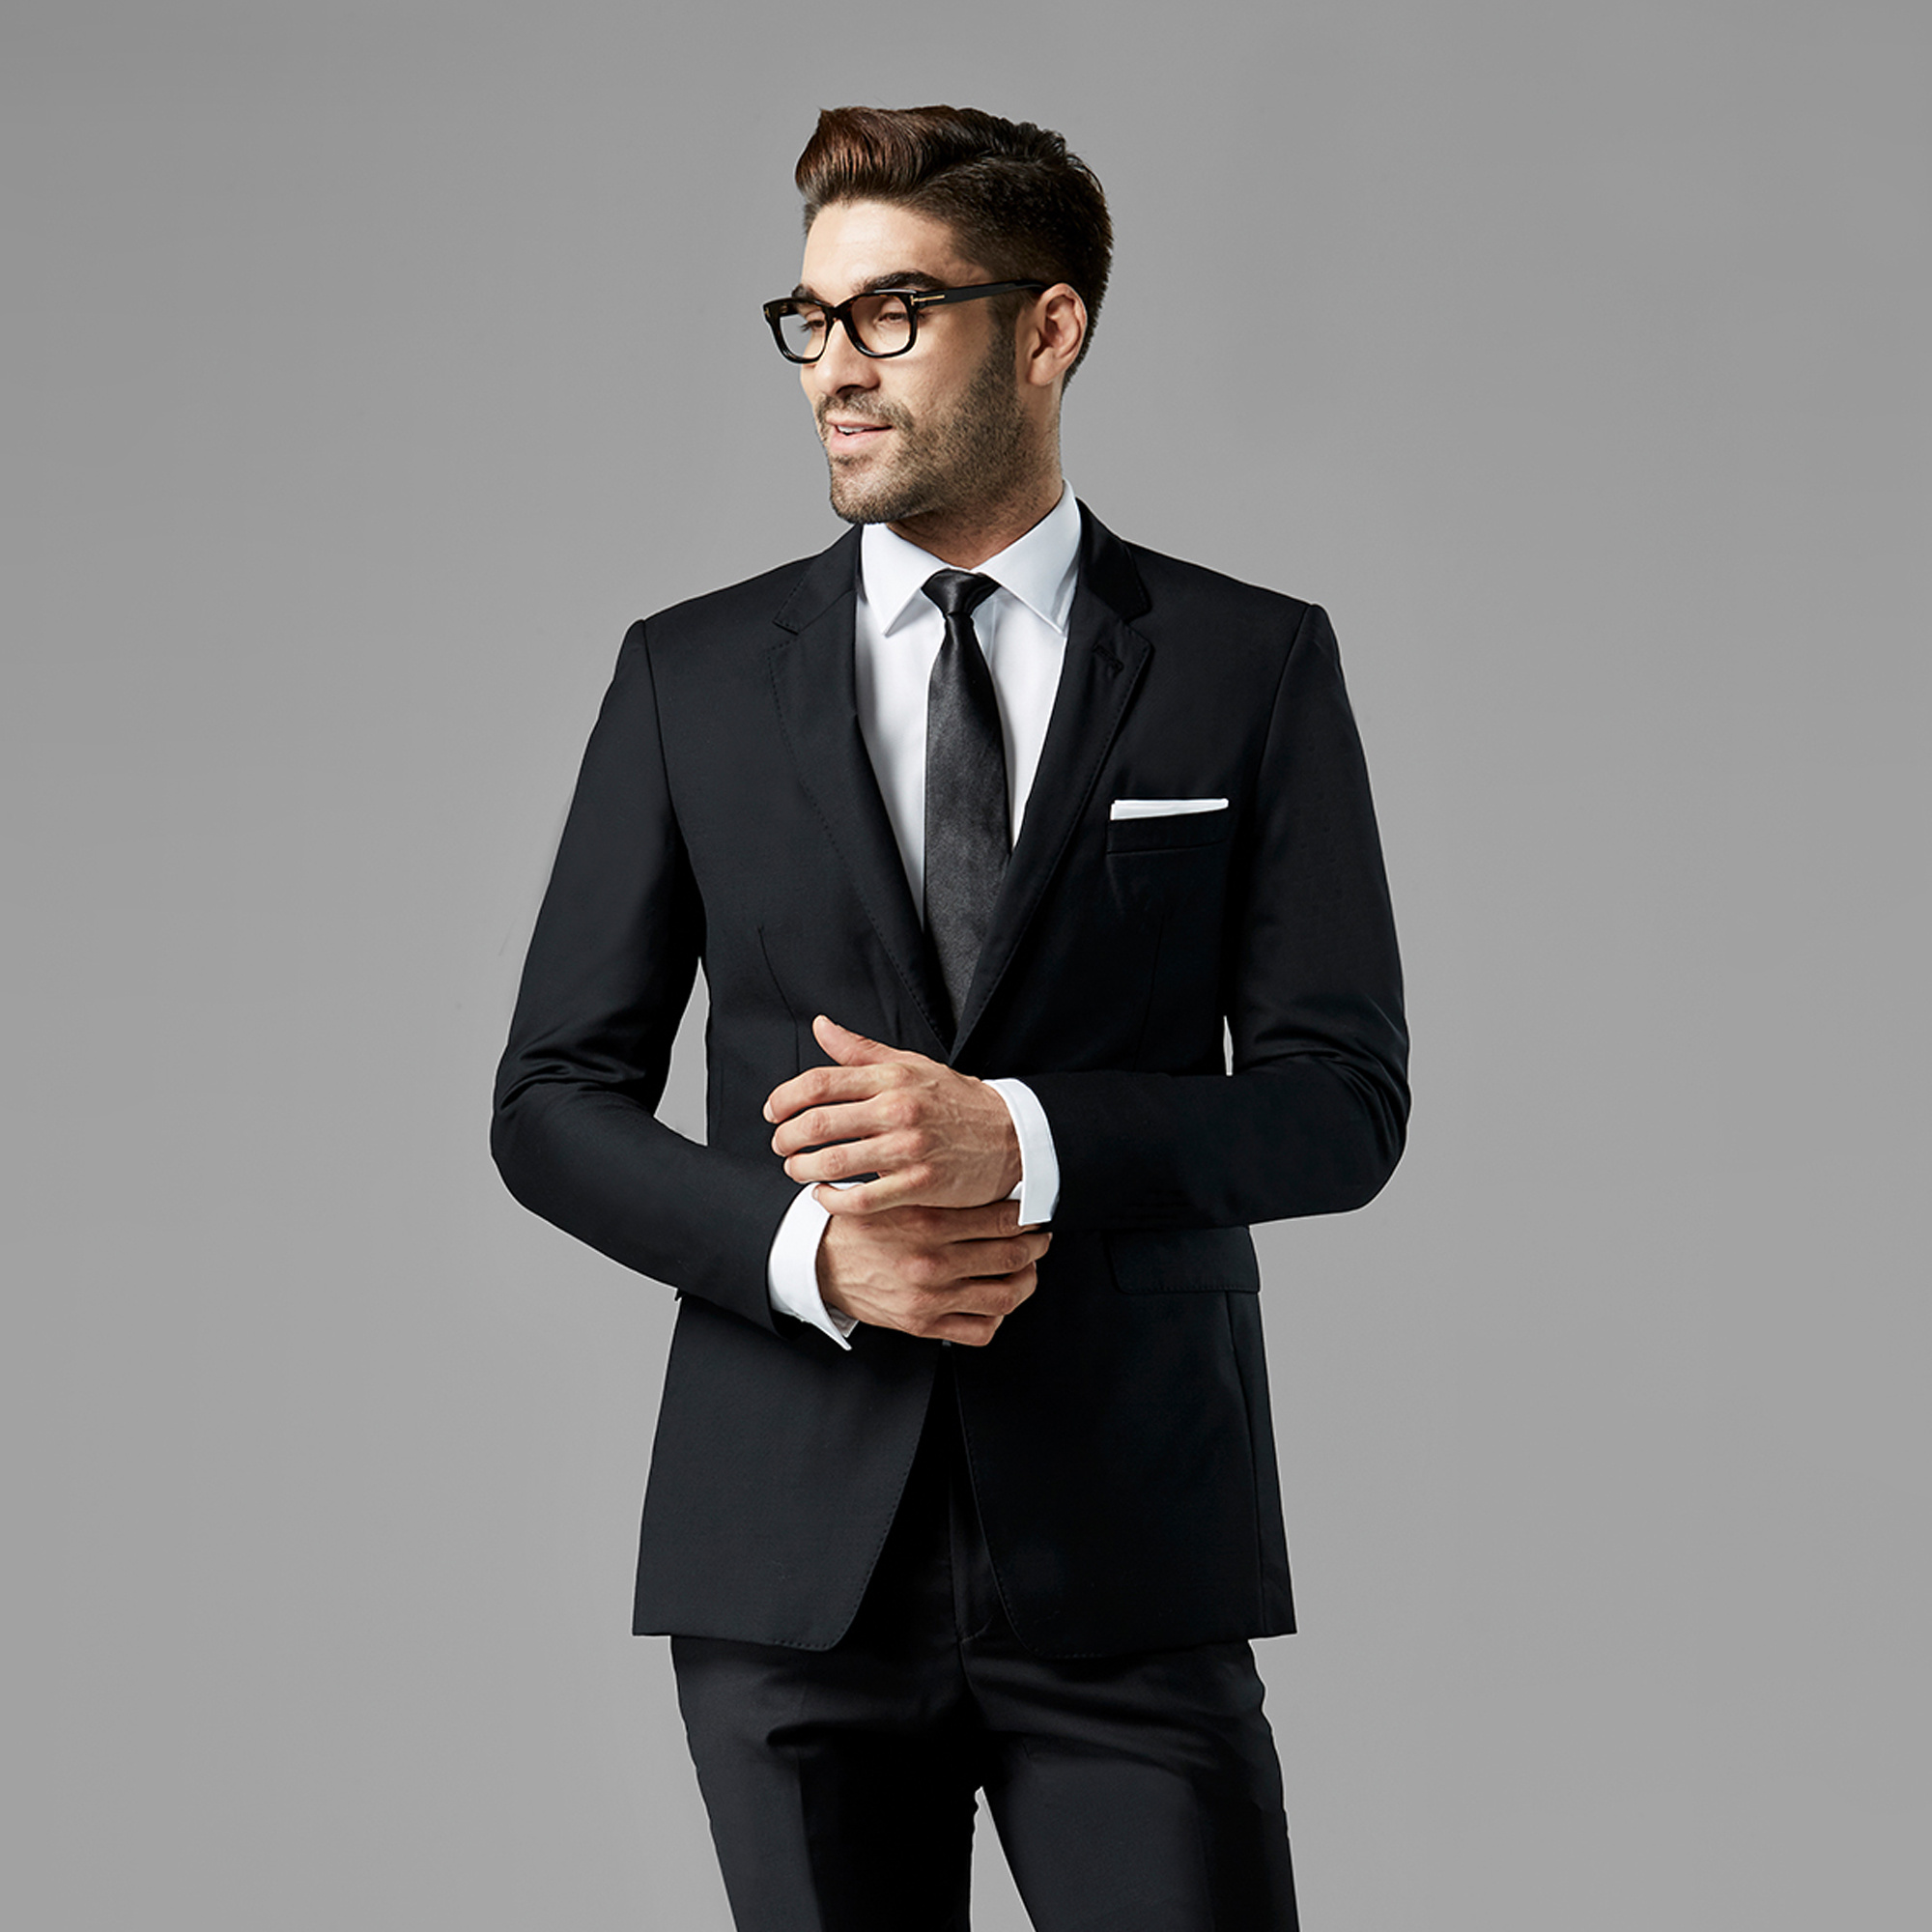 Men S Black Wedding Suits Generation Tux Suit Rental